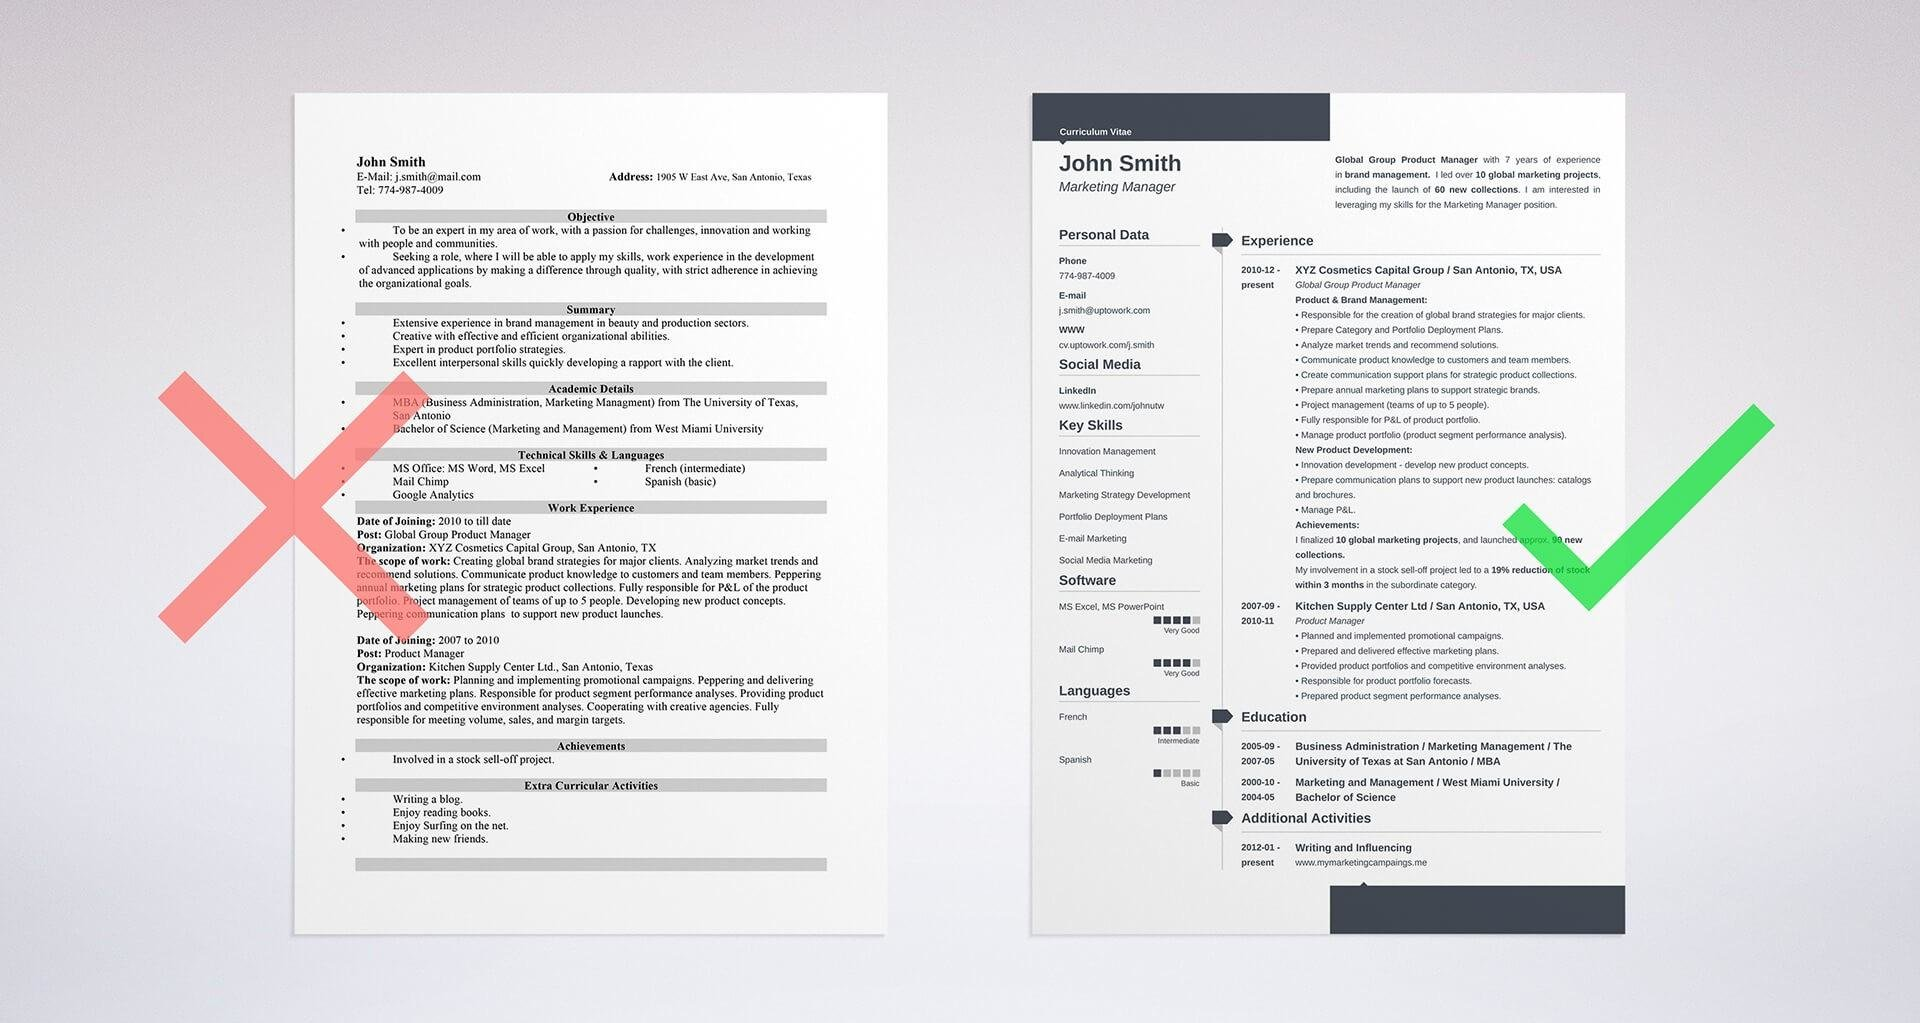 Wonderful +20 Resume Objective Examples   Use Them On Your Resume (Tips)  Objective Of A Resume